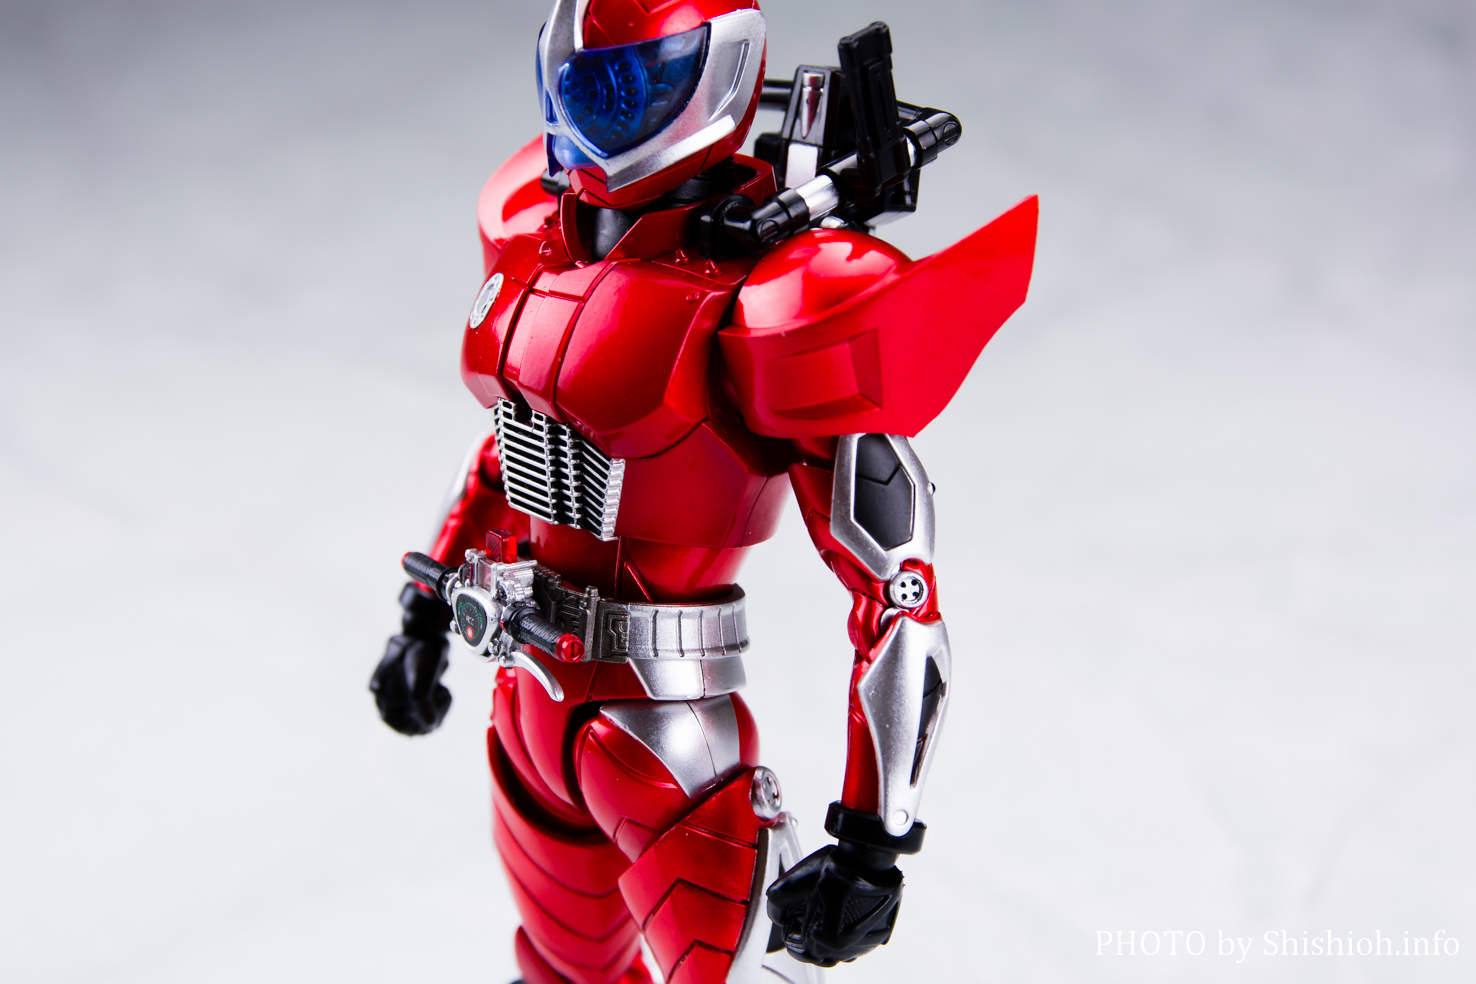 S.H.Figuarts(真骨彫製法)仮面ライダーアクセル